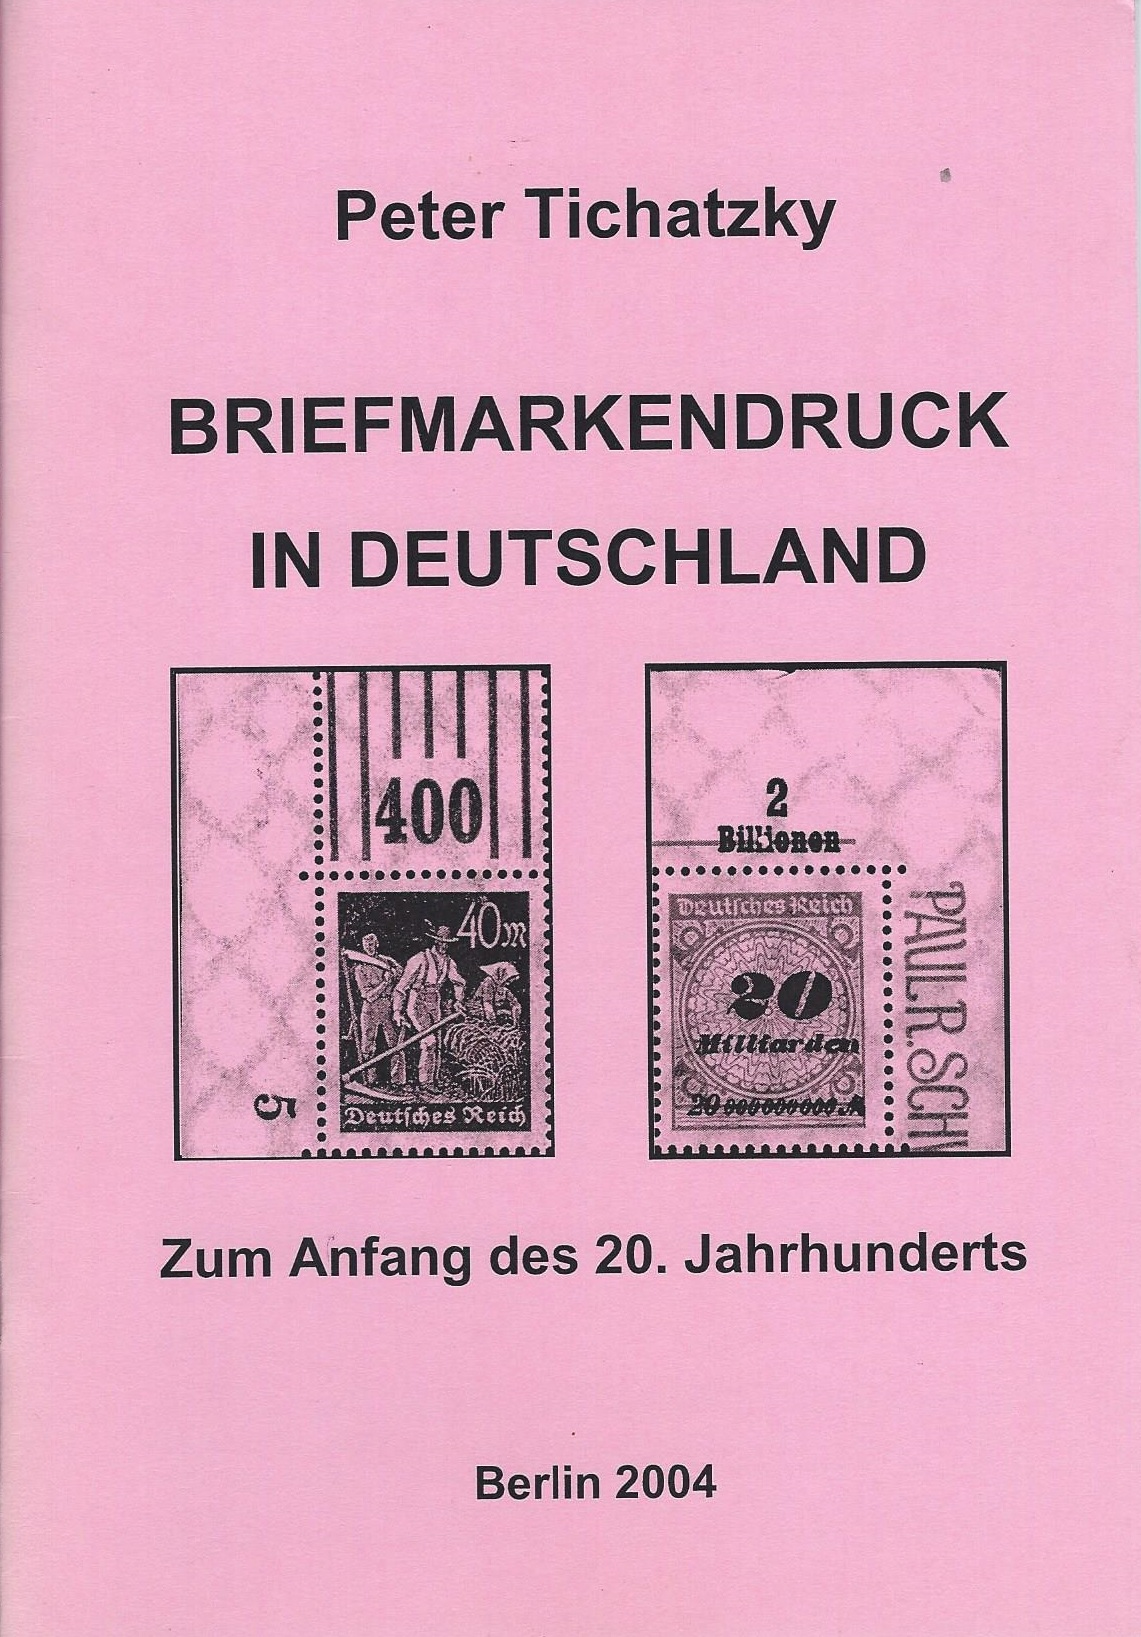 DDR Philatelie Literatur Briefmarkendruck